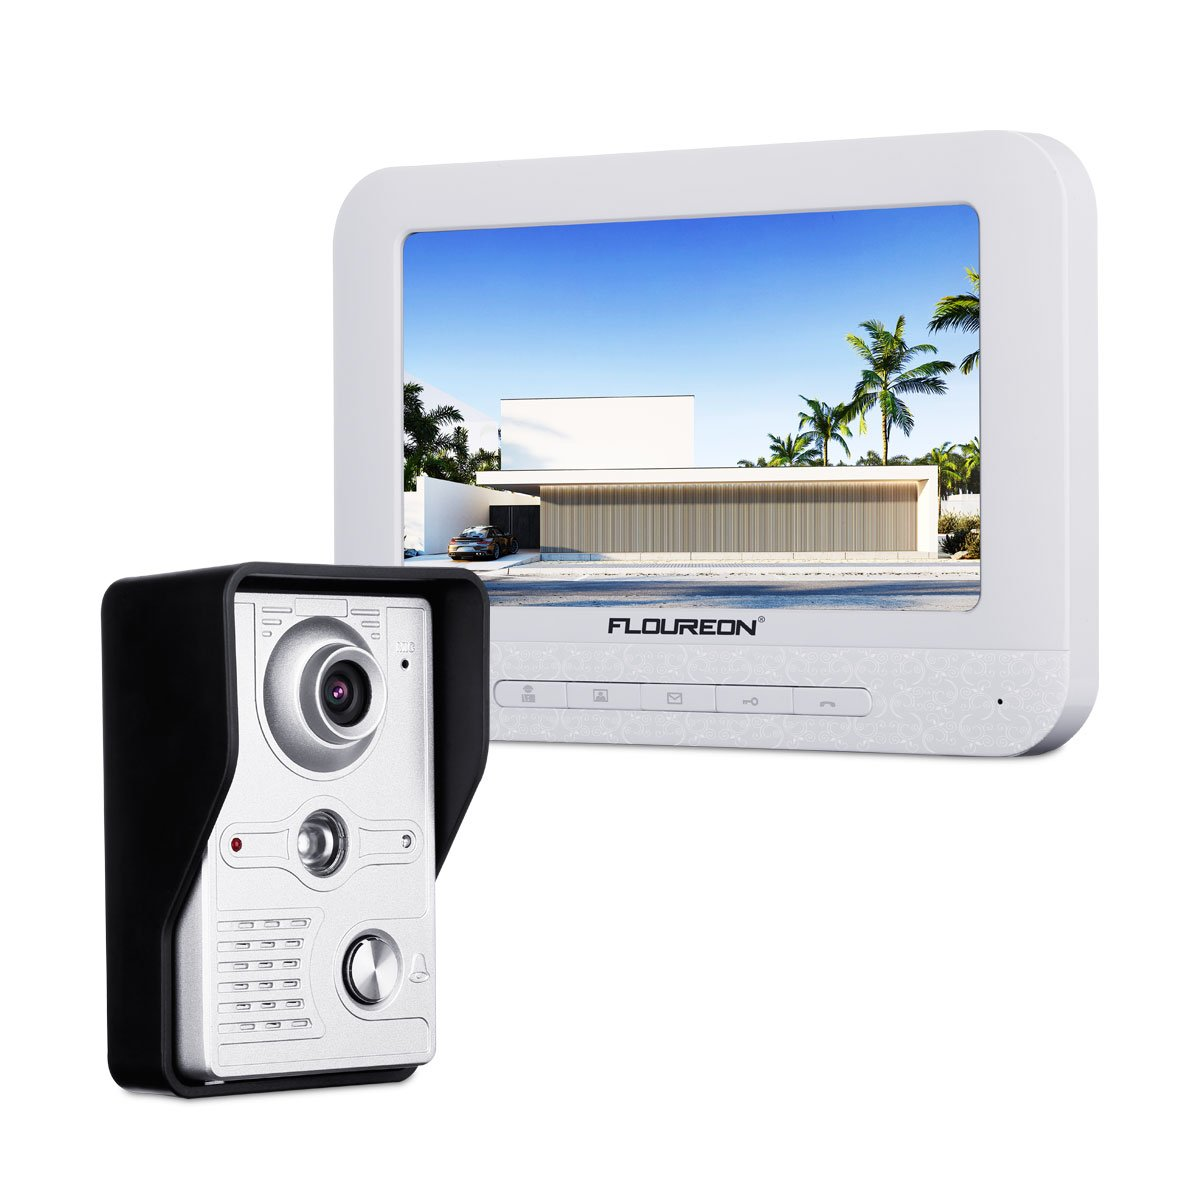 FLOUREON 7 Inch Video Doorbell with monitor